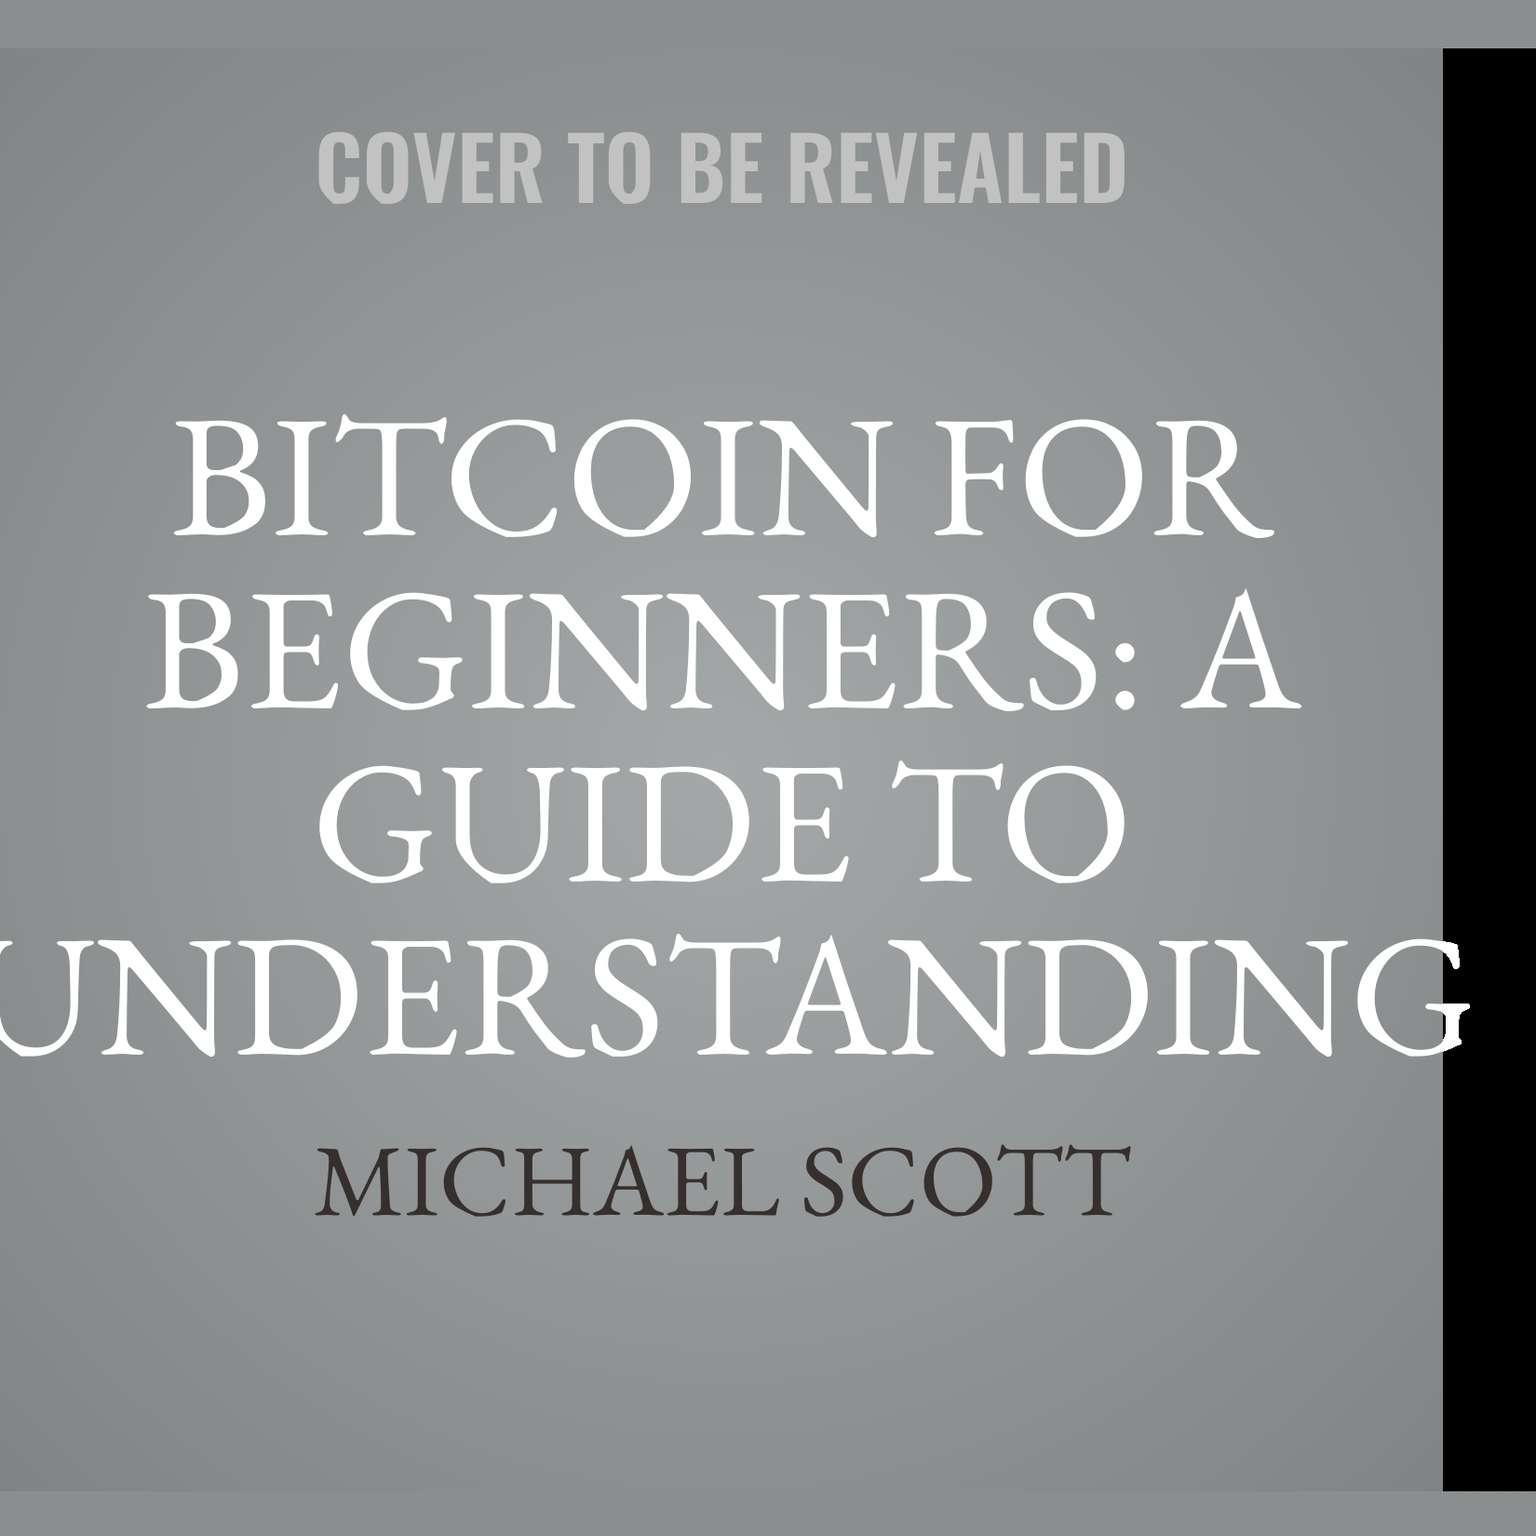 Printable Bitcoin For Beginners: A Guide To Understanding Btc Cryptocurrency And Becoming A Crypto Expert: A Guide to Understanding Btc Cryptocurrency and Becoming a Crypto Expert Audiobook Cover Art